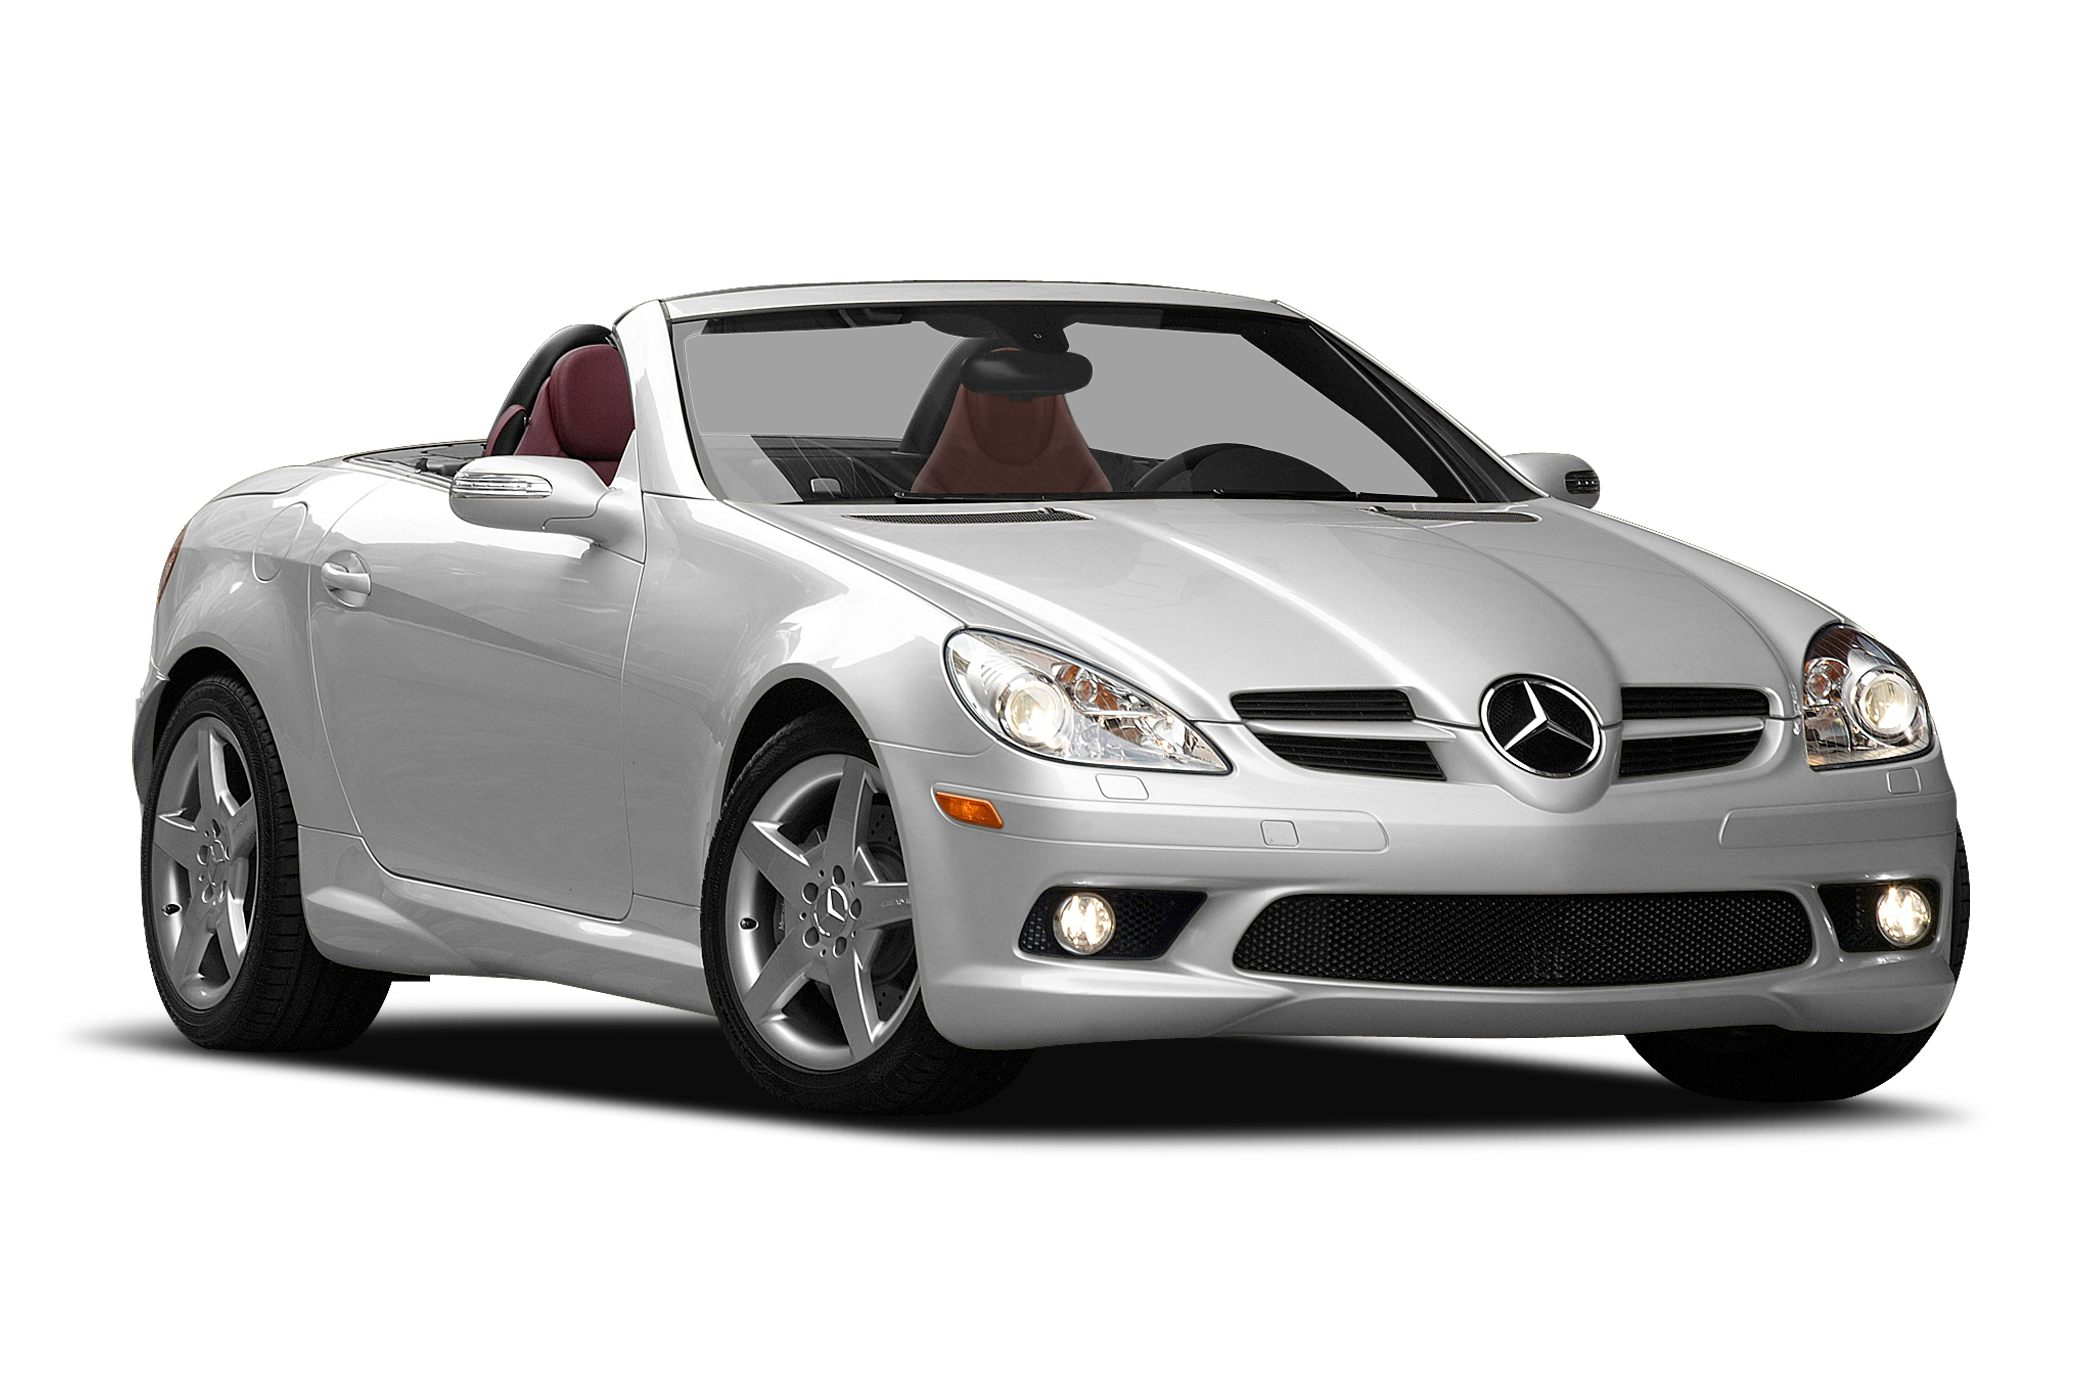 2007 Mercedes-Benz SLK-Class SLK350 Roadster Convertible for sale in Tulsa for $22,500 with 20,247 miles